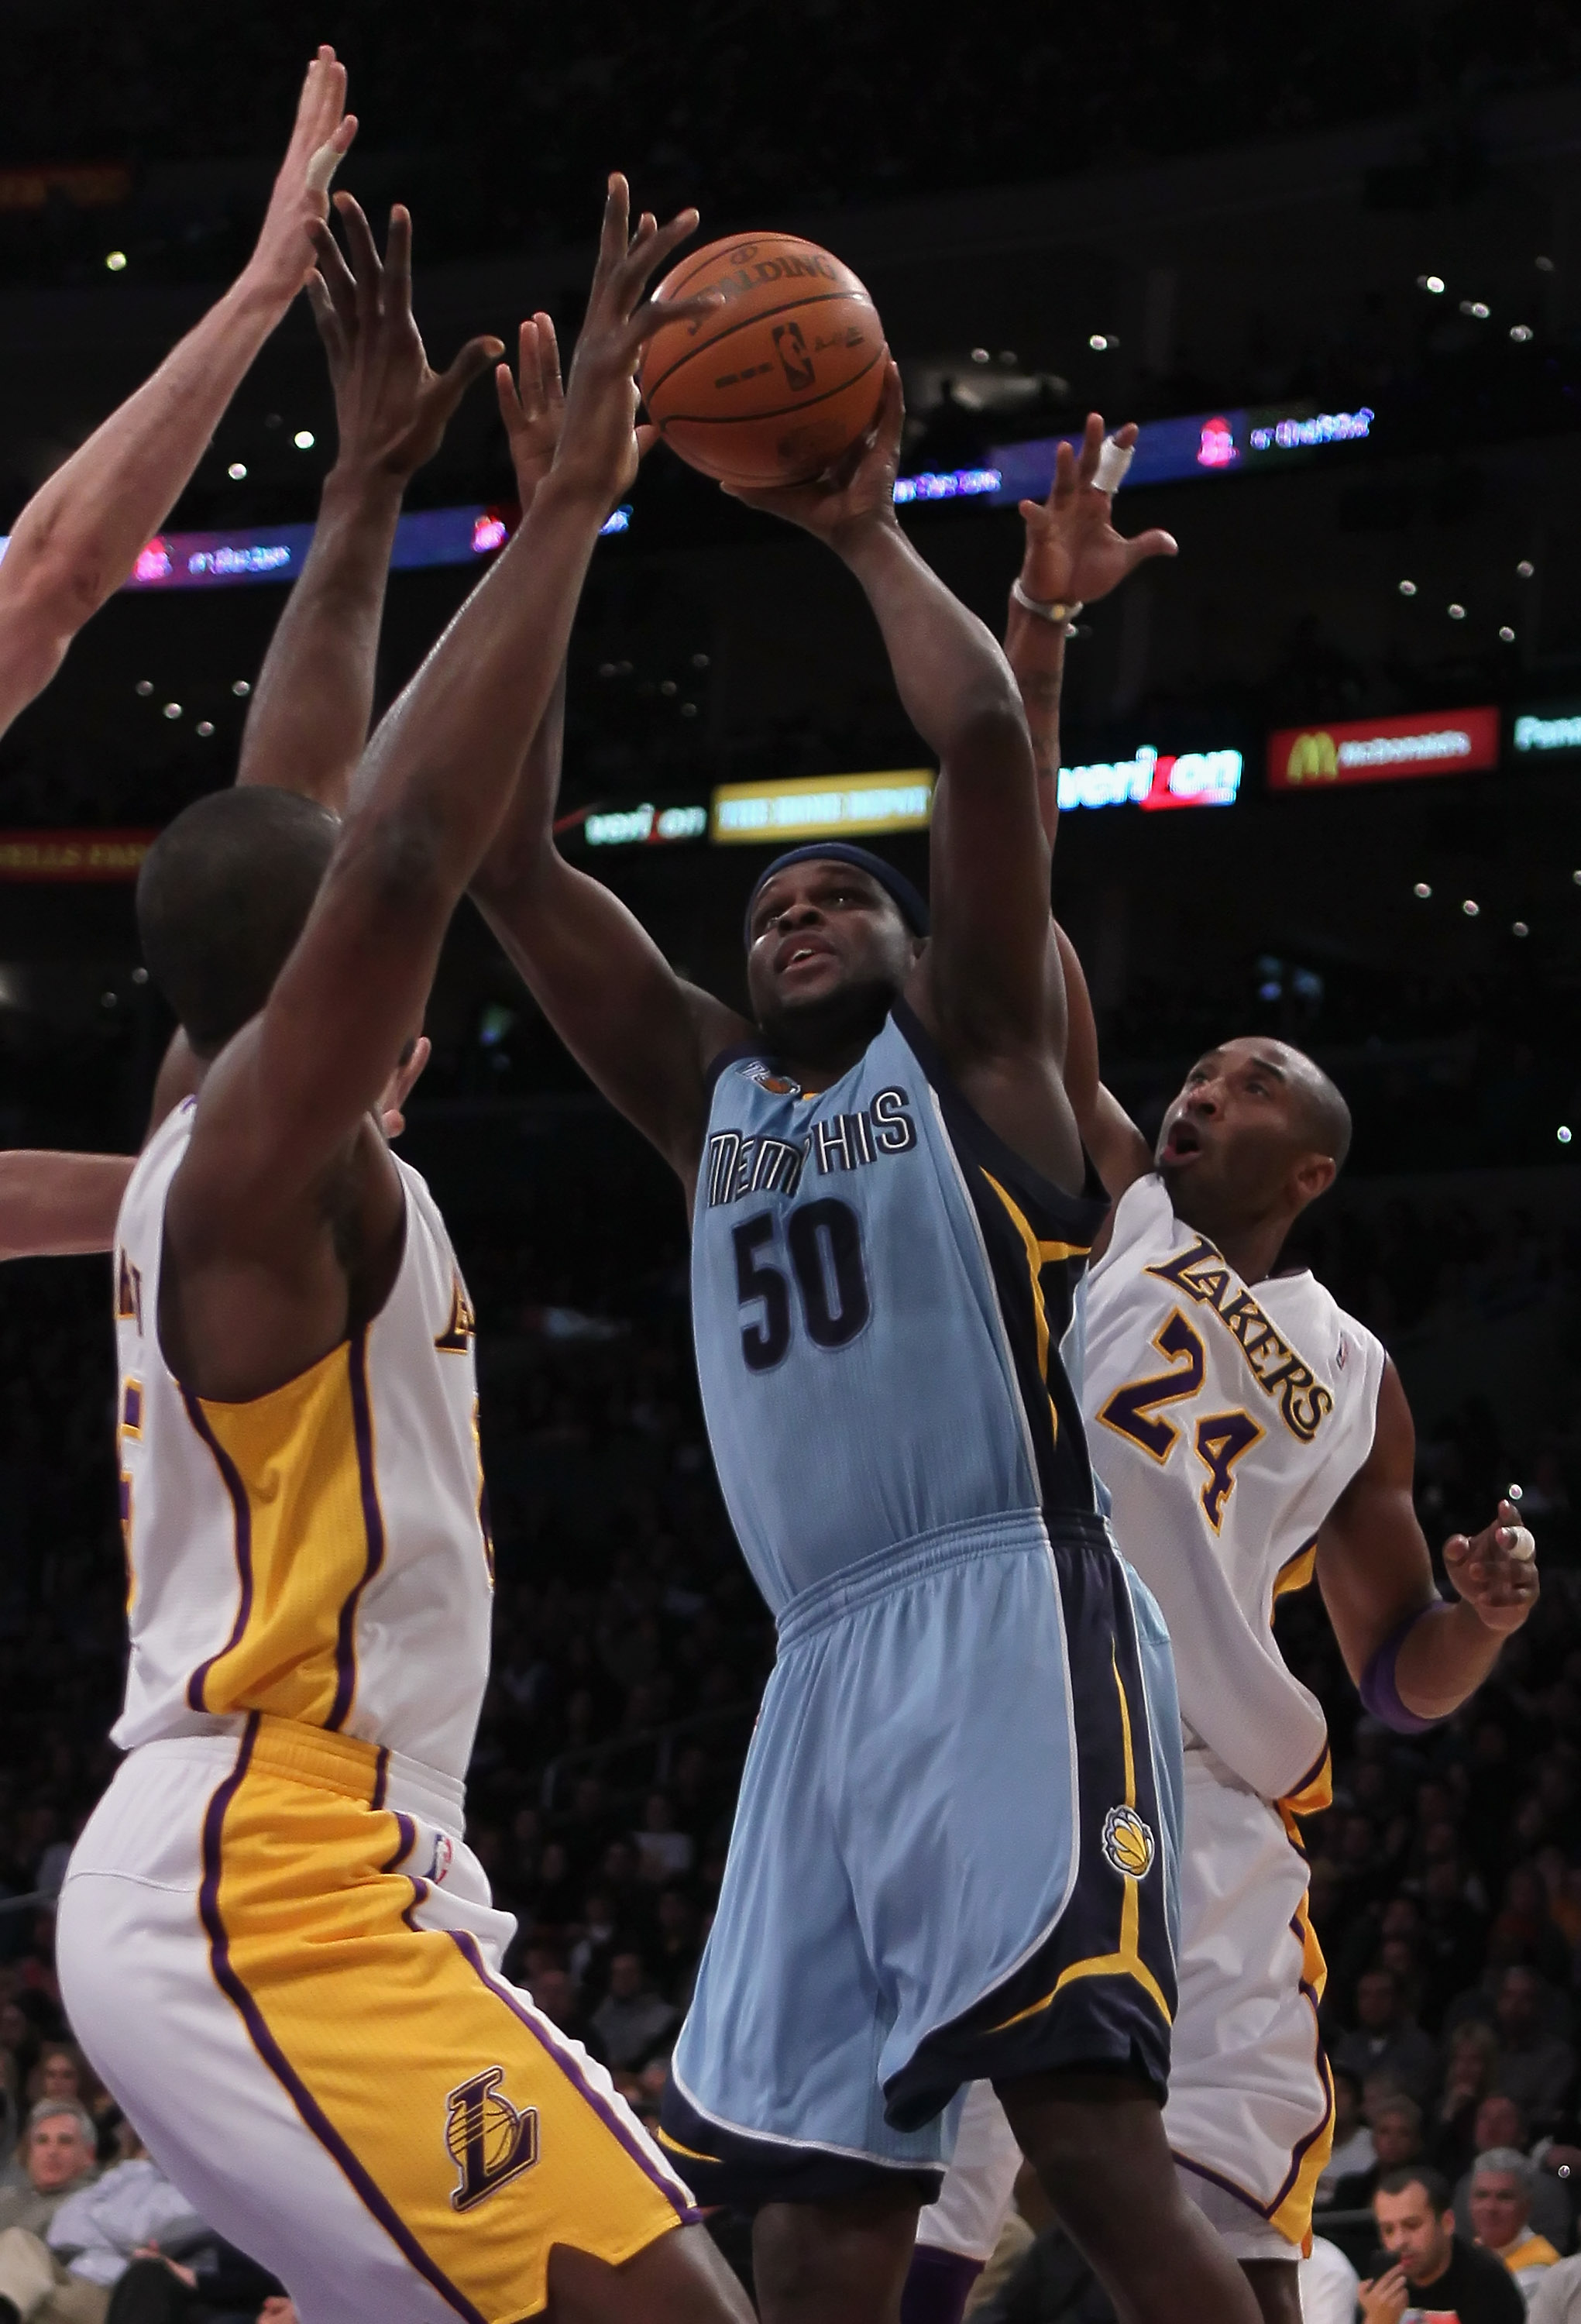 LOS ANGELES, CA - JANUARY 02:  Zach Randolph #50 of the Memphis Grizzlies is defended by Ron Artest (L) #15 and Kobe Bryant #24 of the Los Angeles Lakers during the first half at Staples Center on January 2, 2011 in Los Angeles, California. NOTE TO USER: